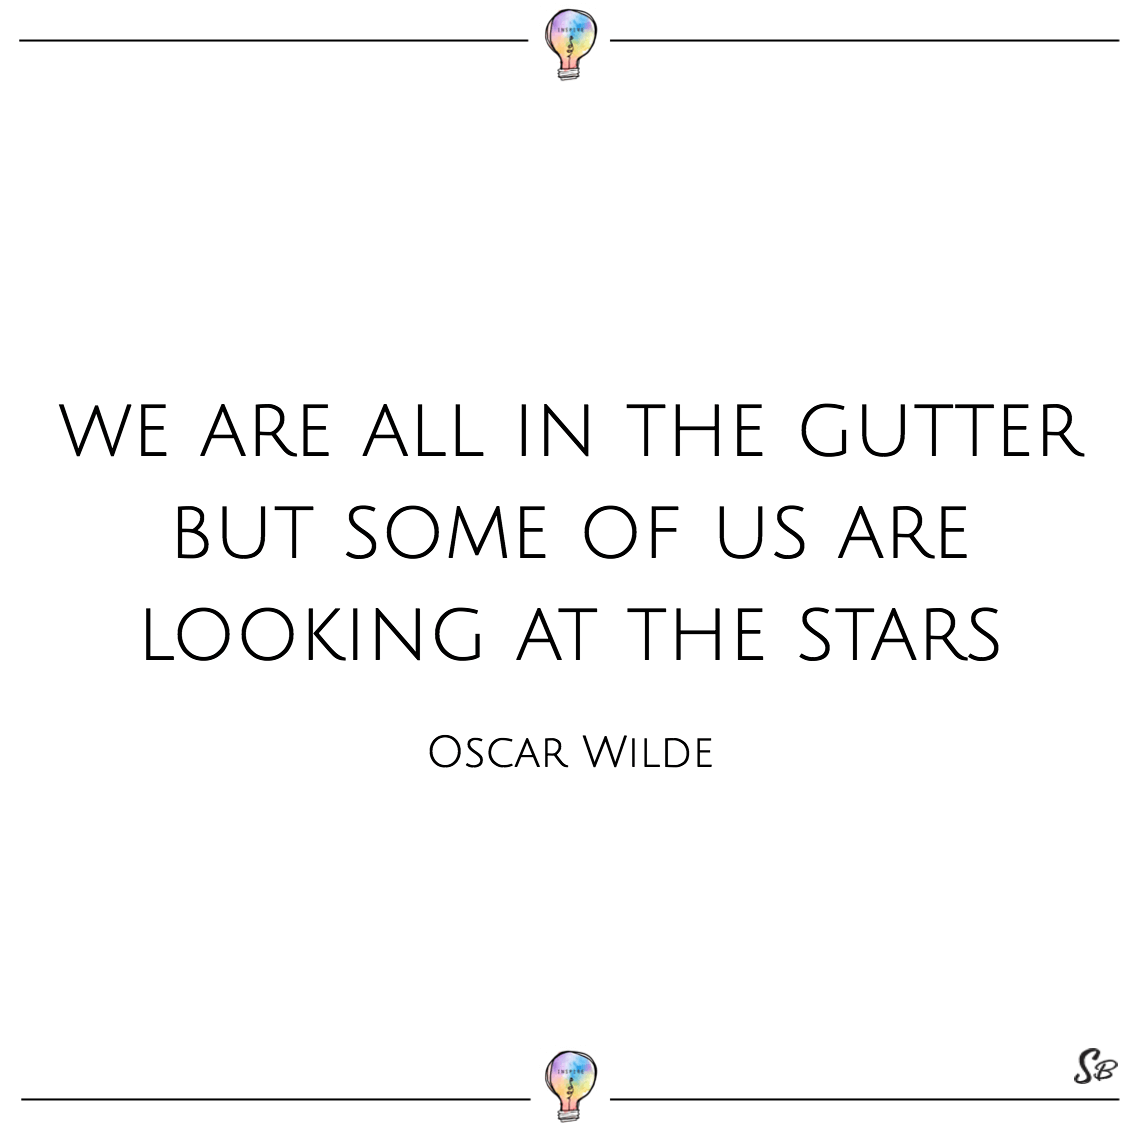 We are all in the gutter but some of us are looking at the stars oscar wilde deep quotes